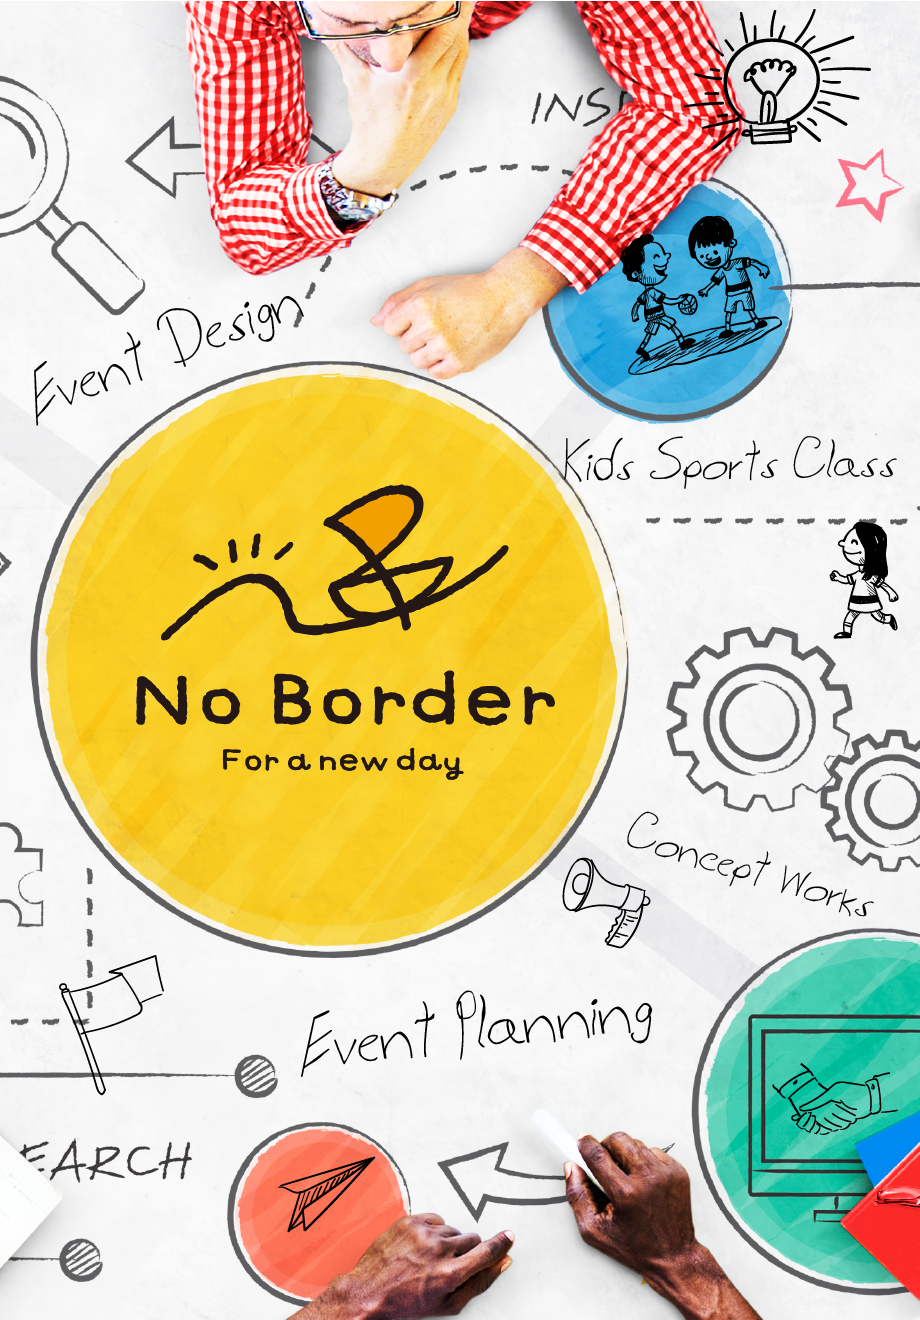 No Border for a new day